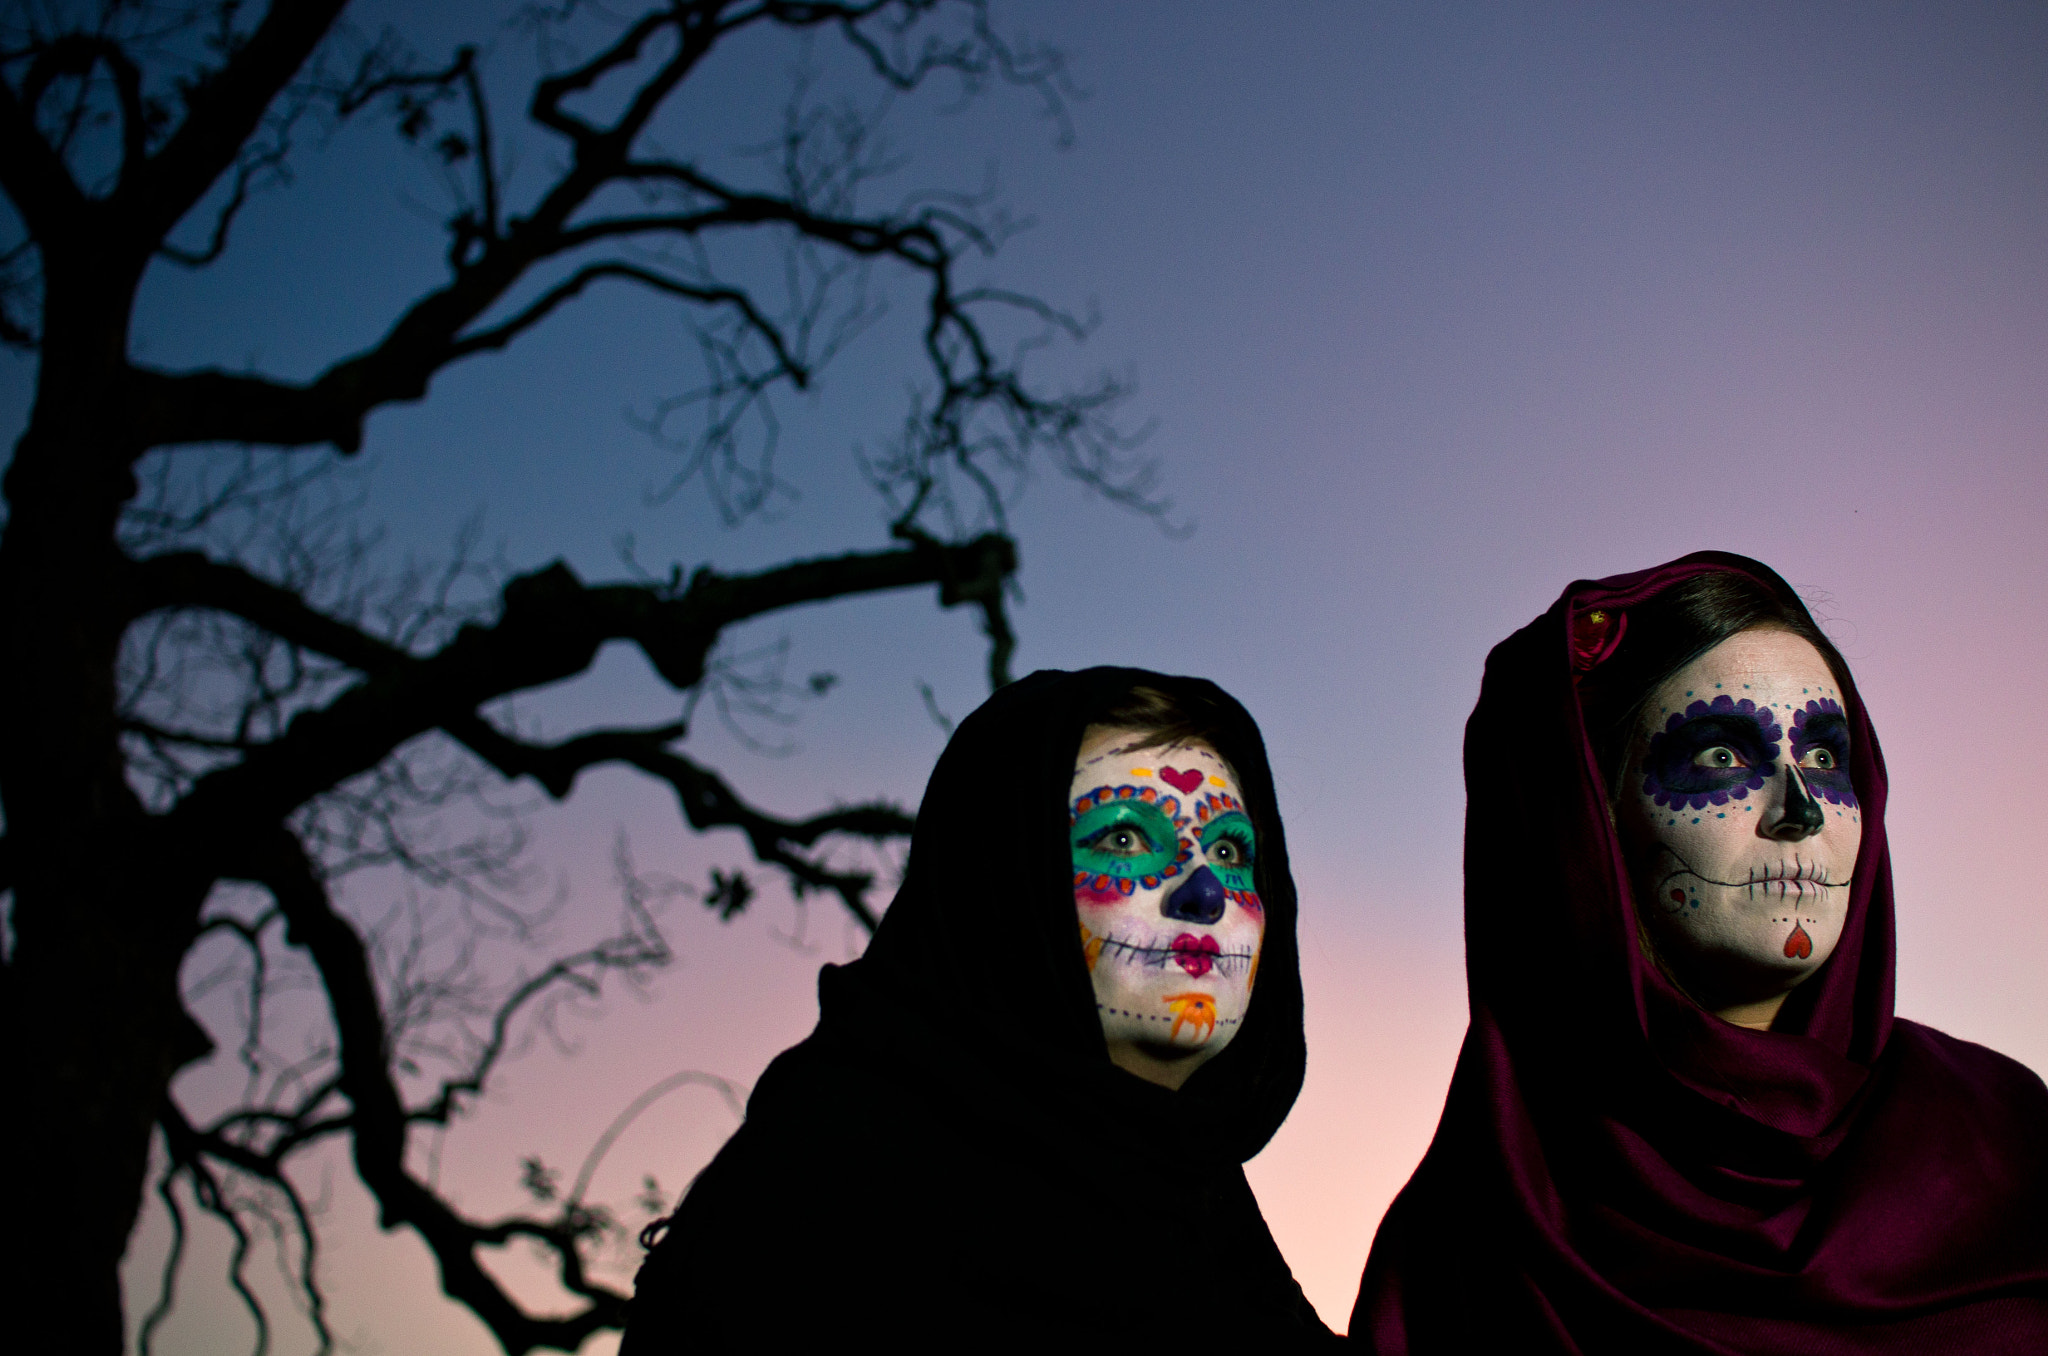 Photograph Day of the Dead by Stian Rasmussen on 500px